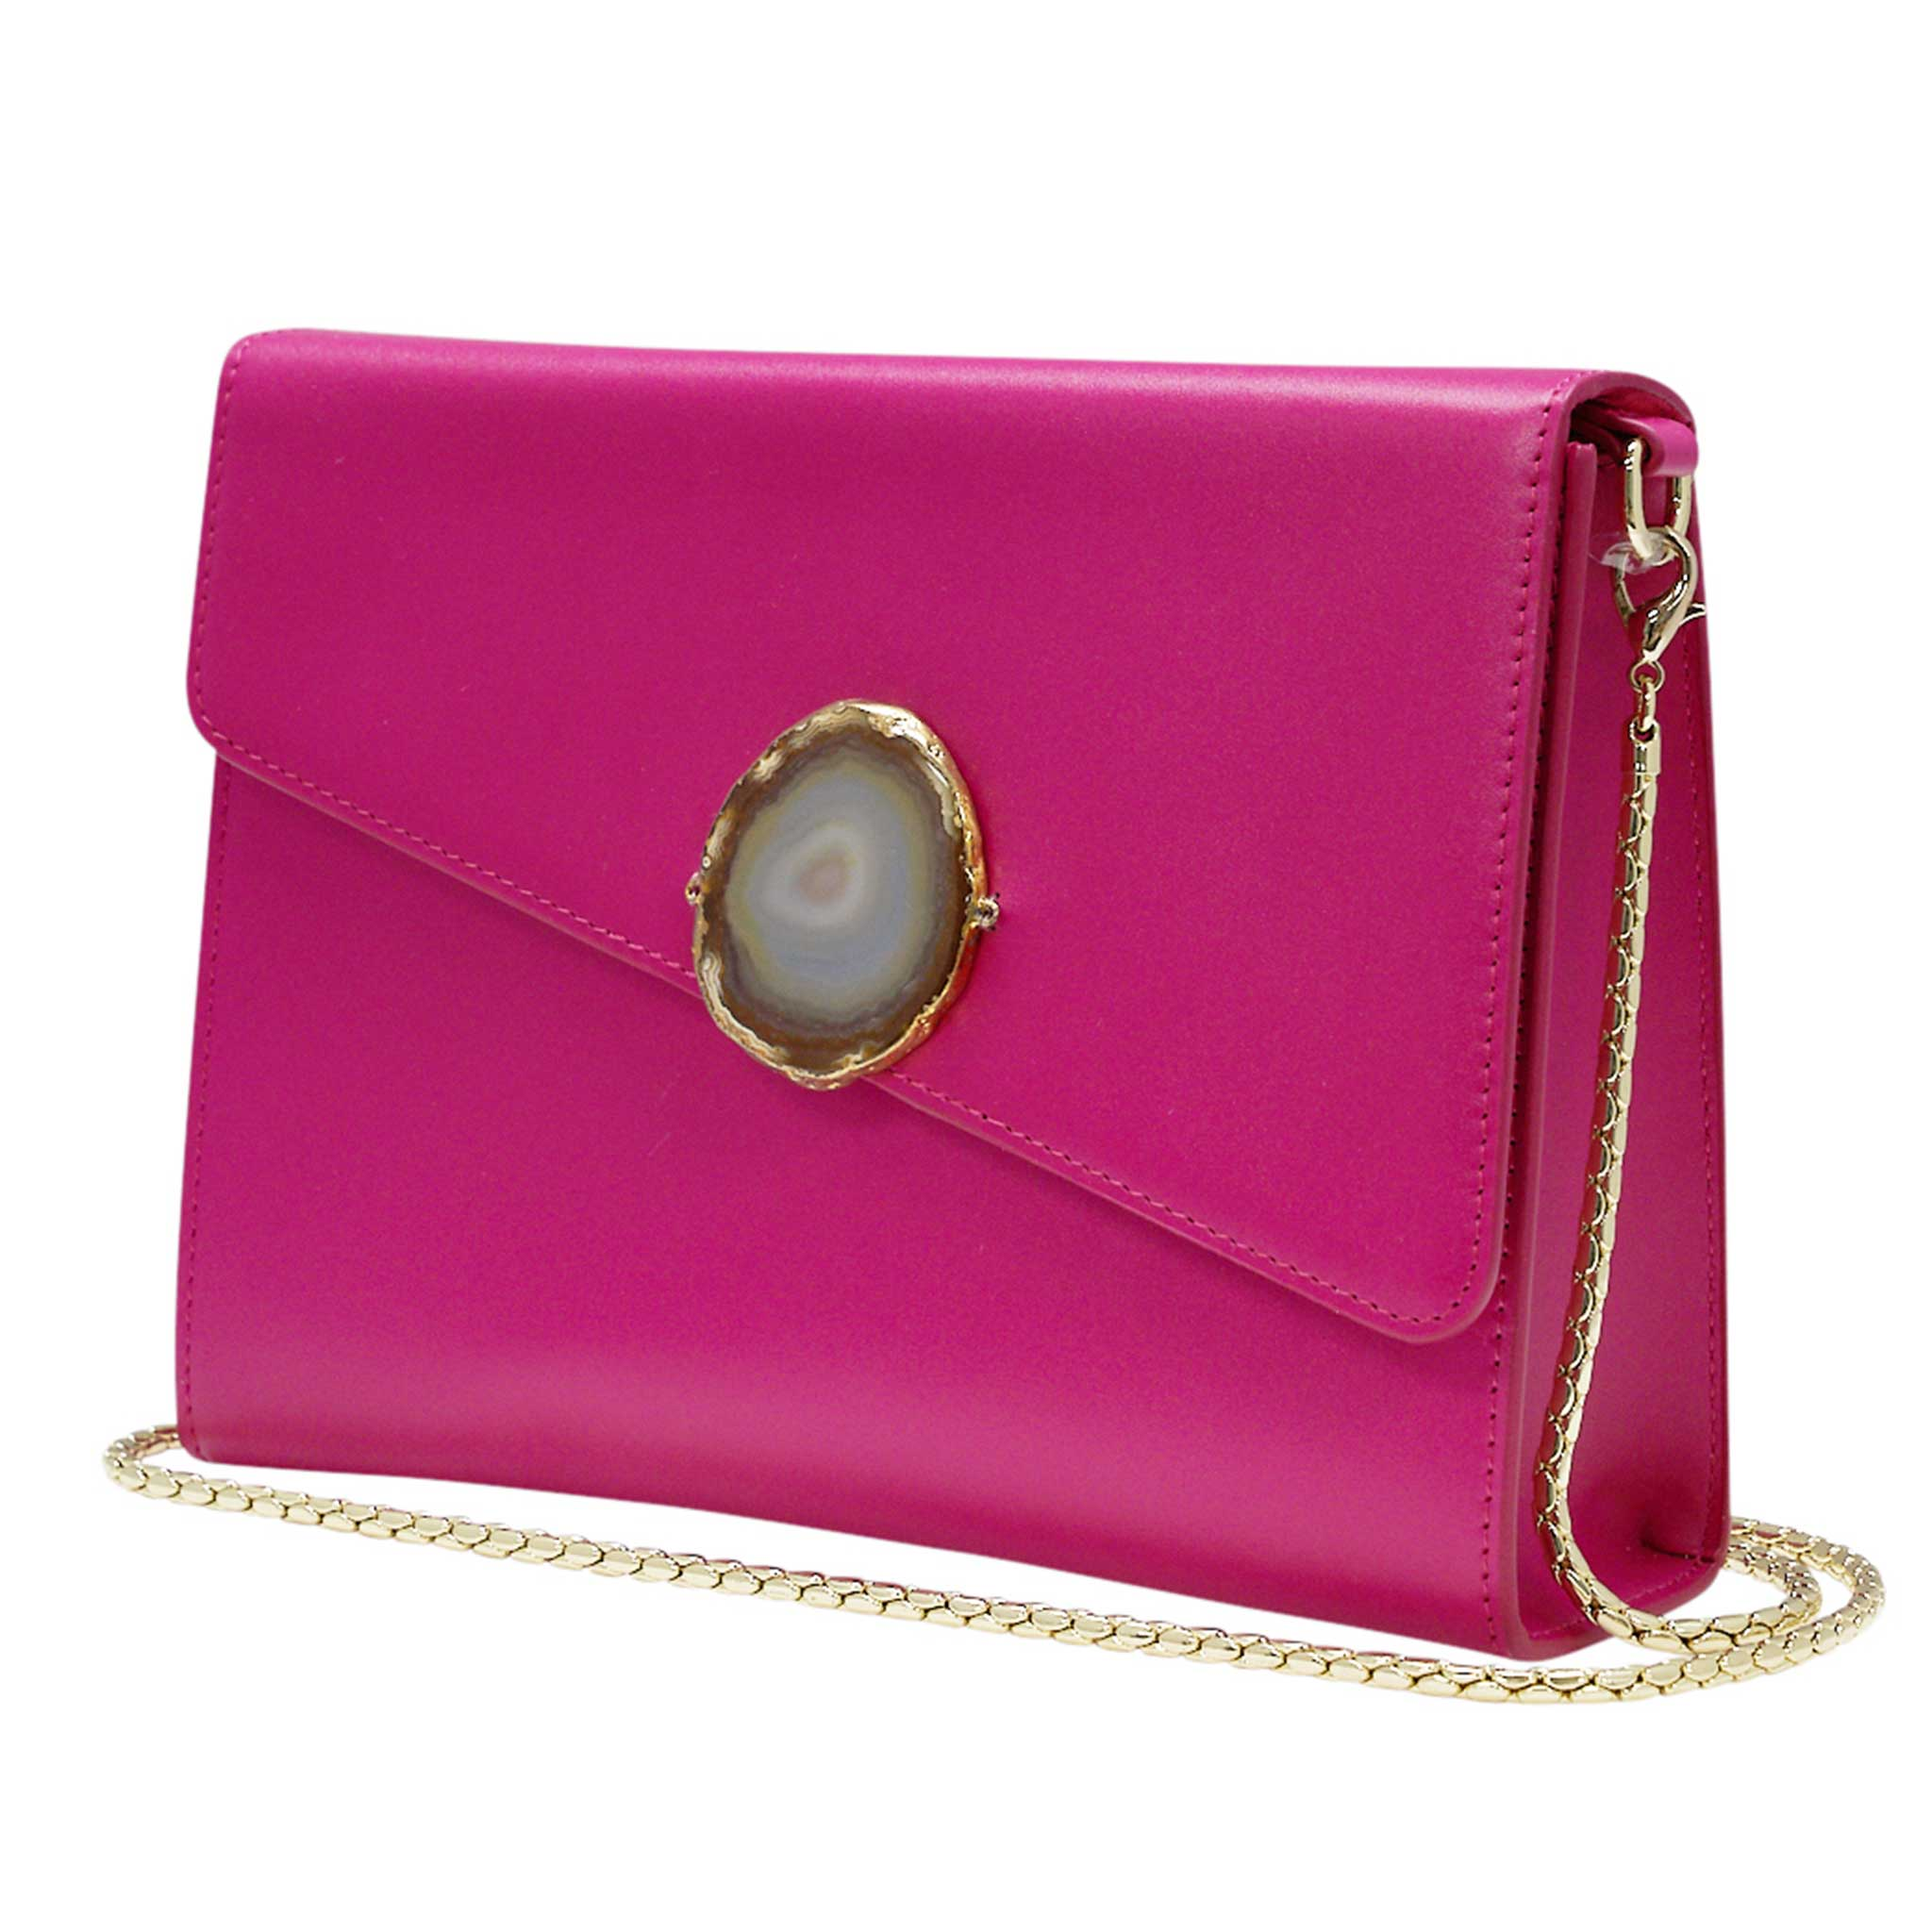 LOVED BAG - PINK RUBY LEATHER WITH BROWN AGATE - 1.01.001.014